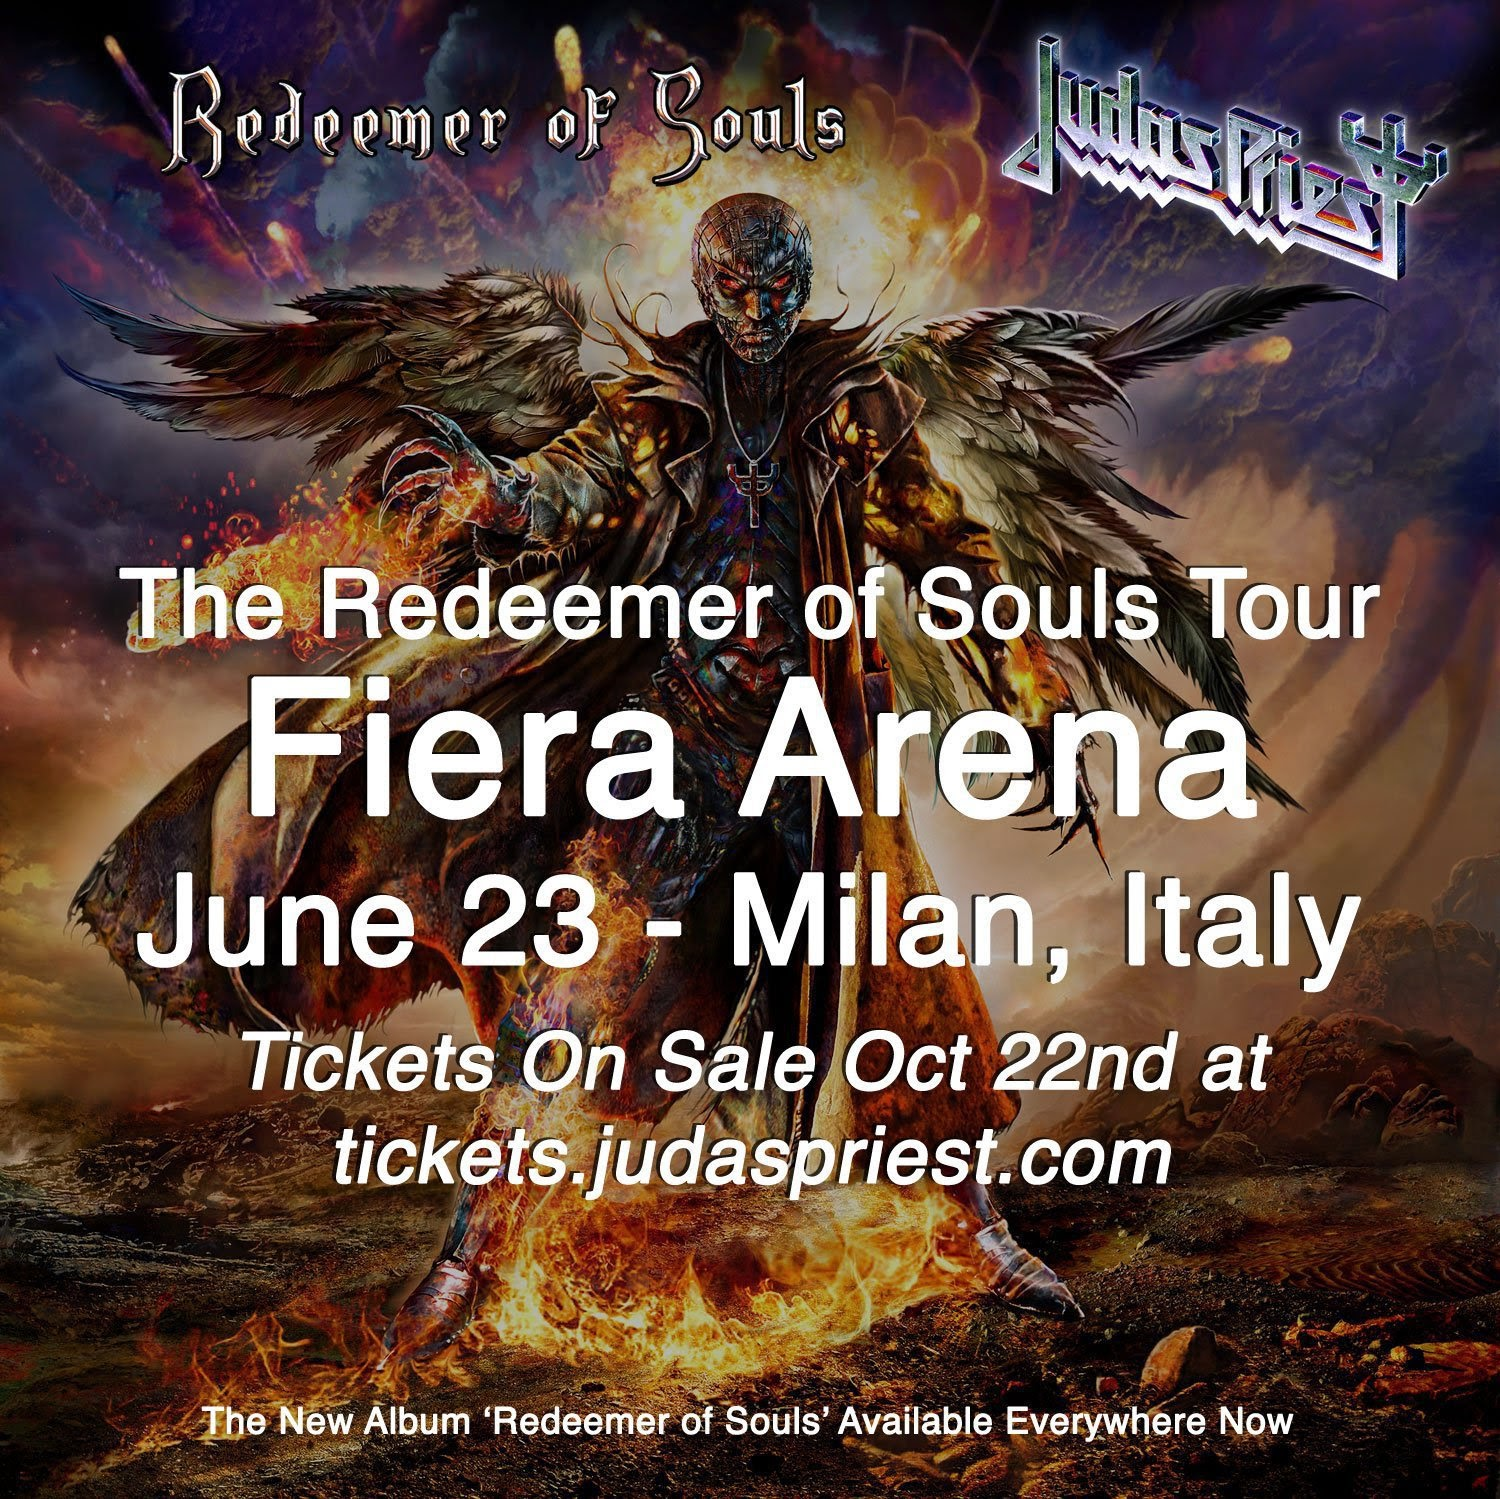 judas priest milano 2015